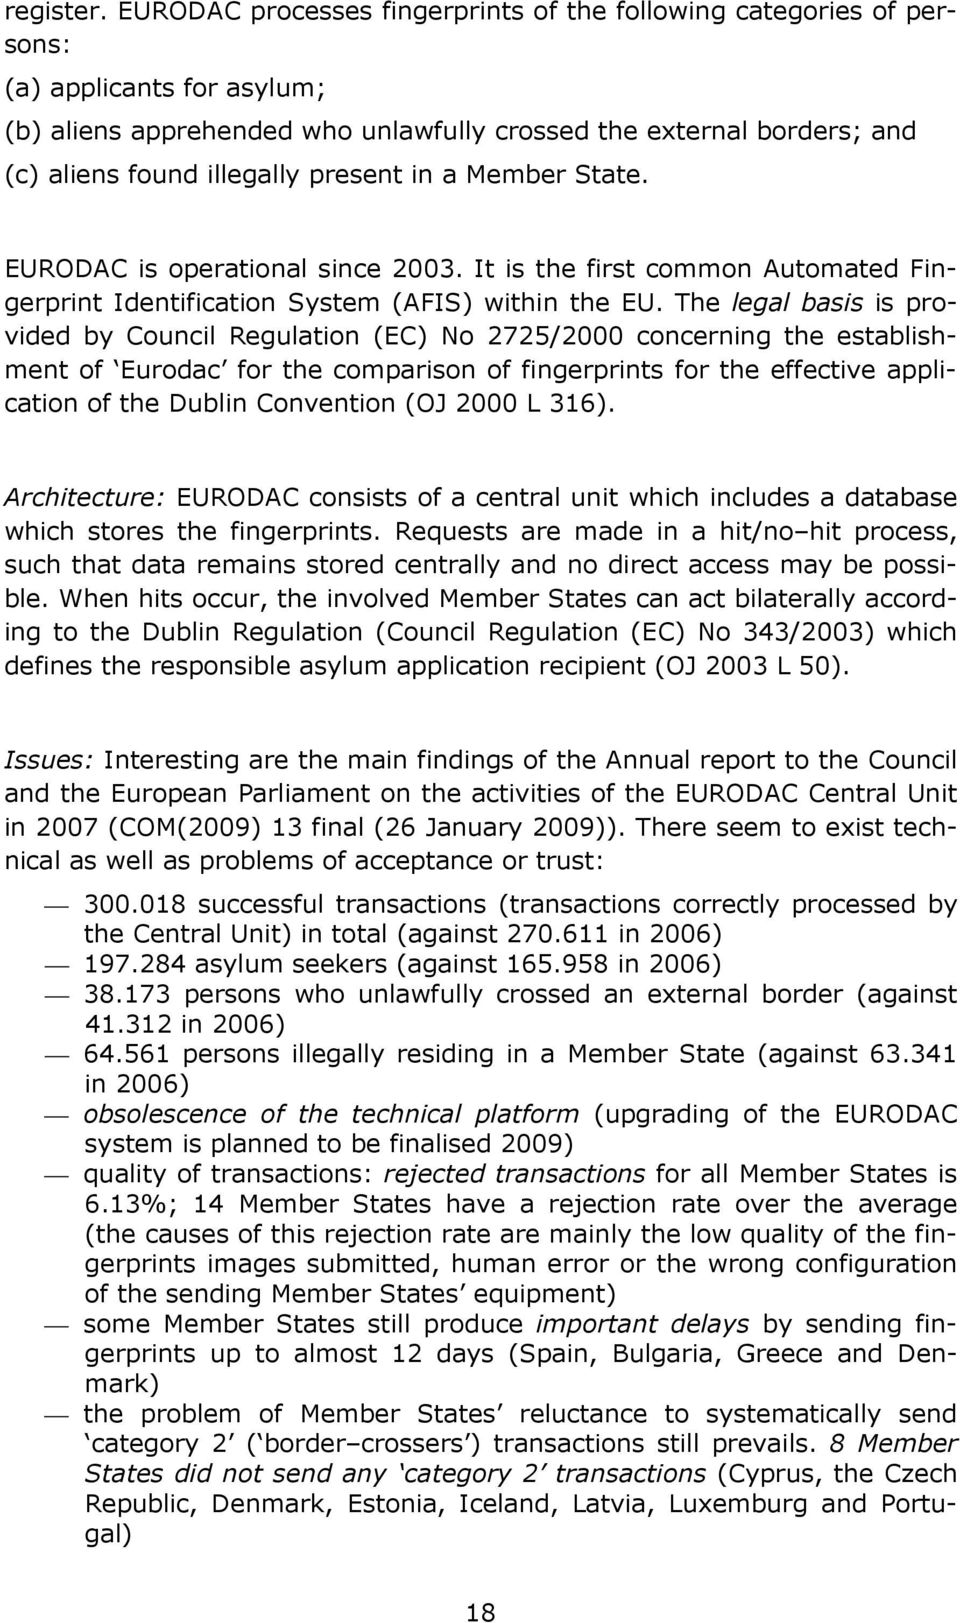 present in a Member State. EURODAC is operational since 2003. It is the first common Automated Fingerprint Identification System (AFIS) within the EU.